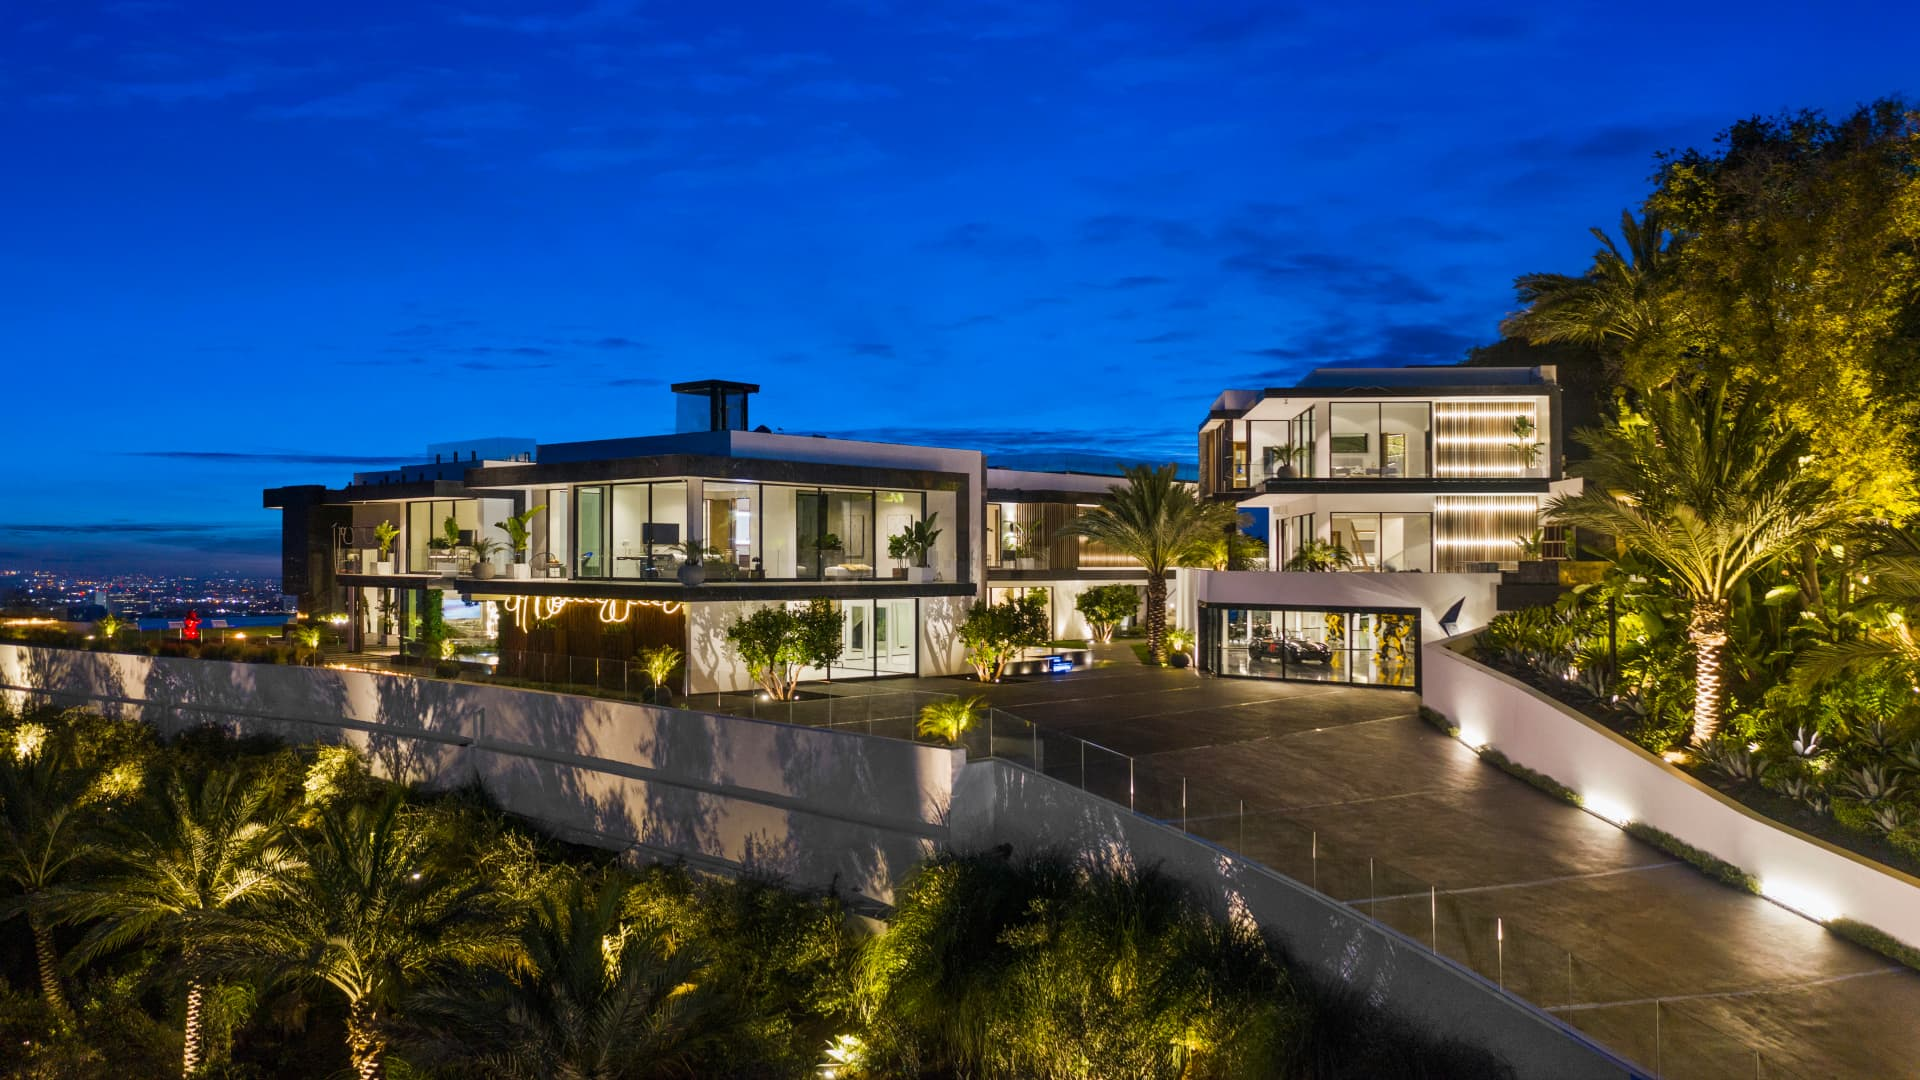 A view of the driveway leading to the residence at 777 Sarbonne Road in Bel-Air, California.